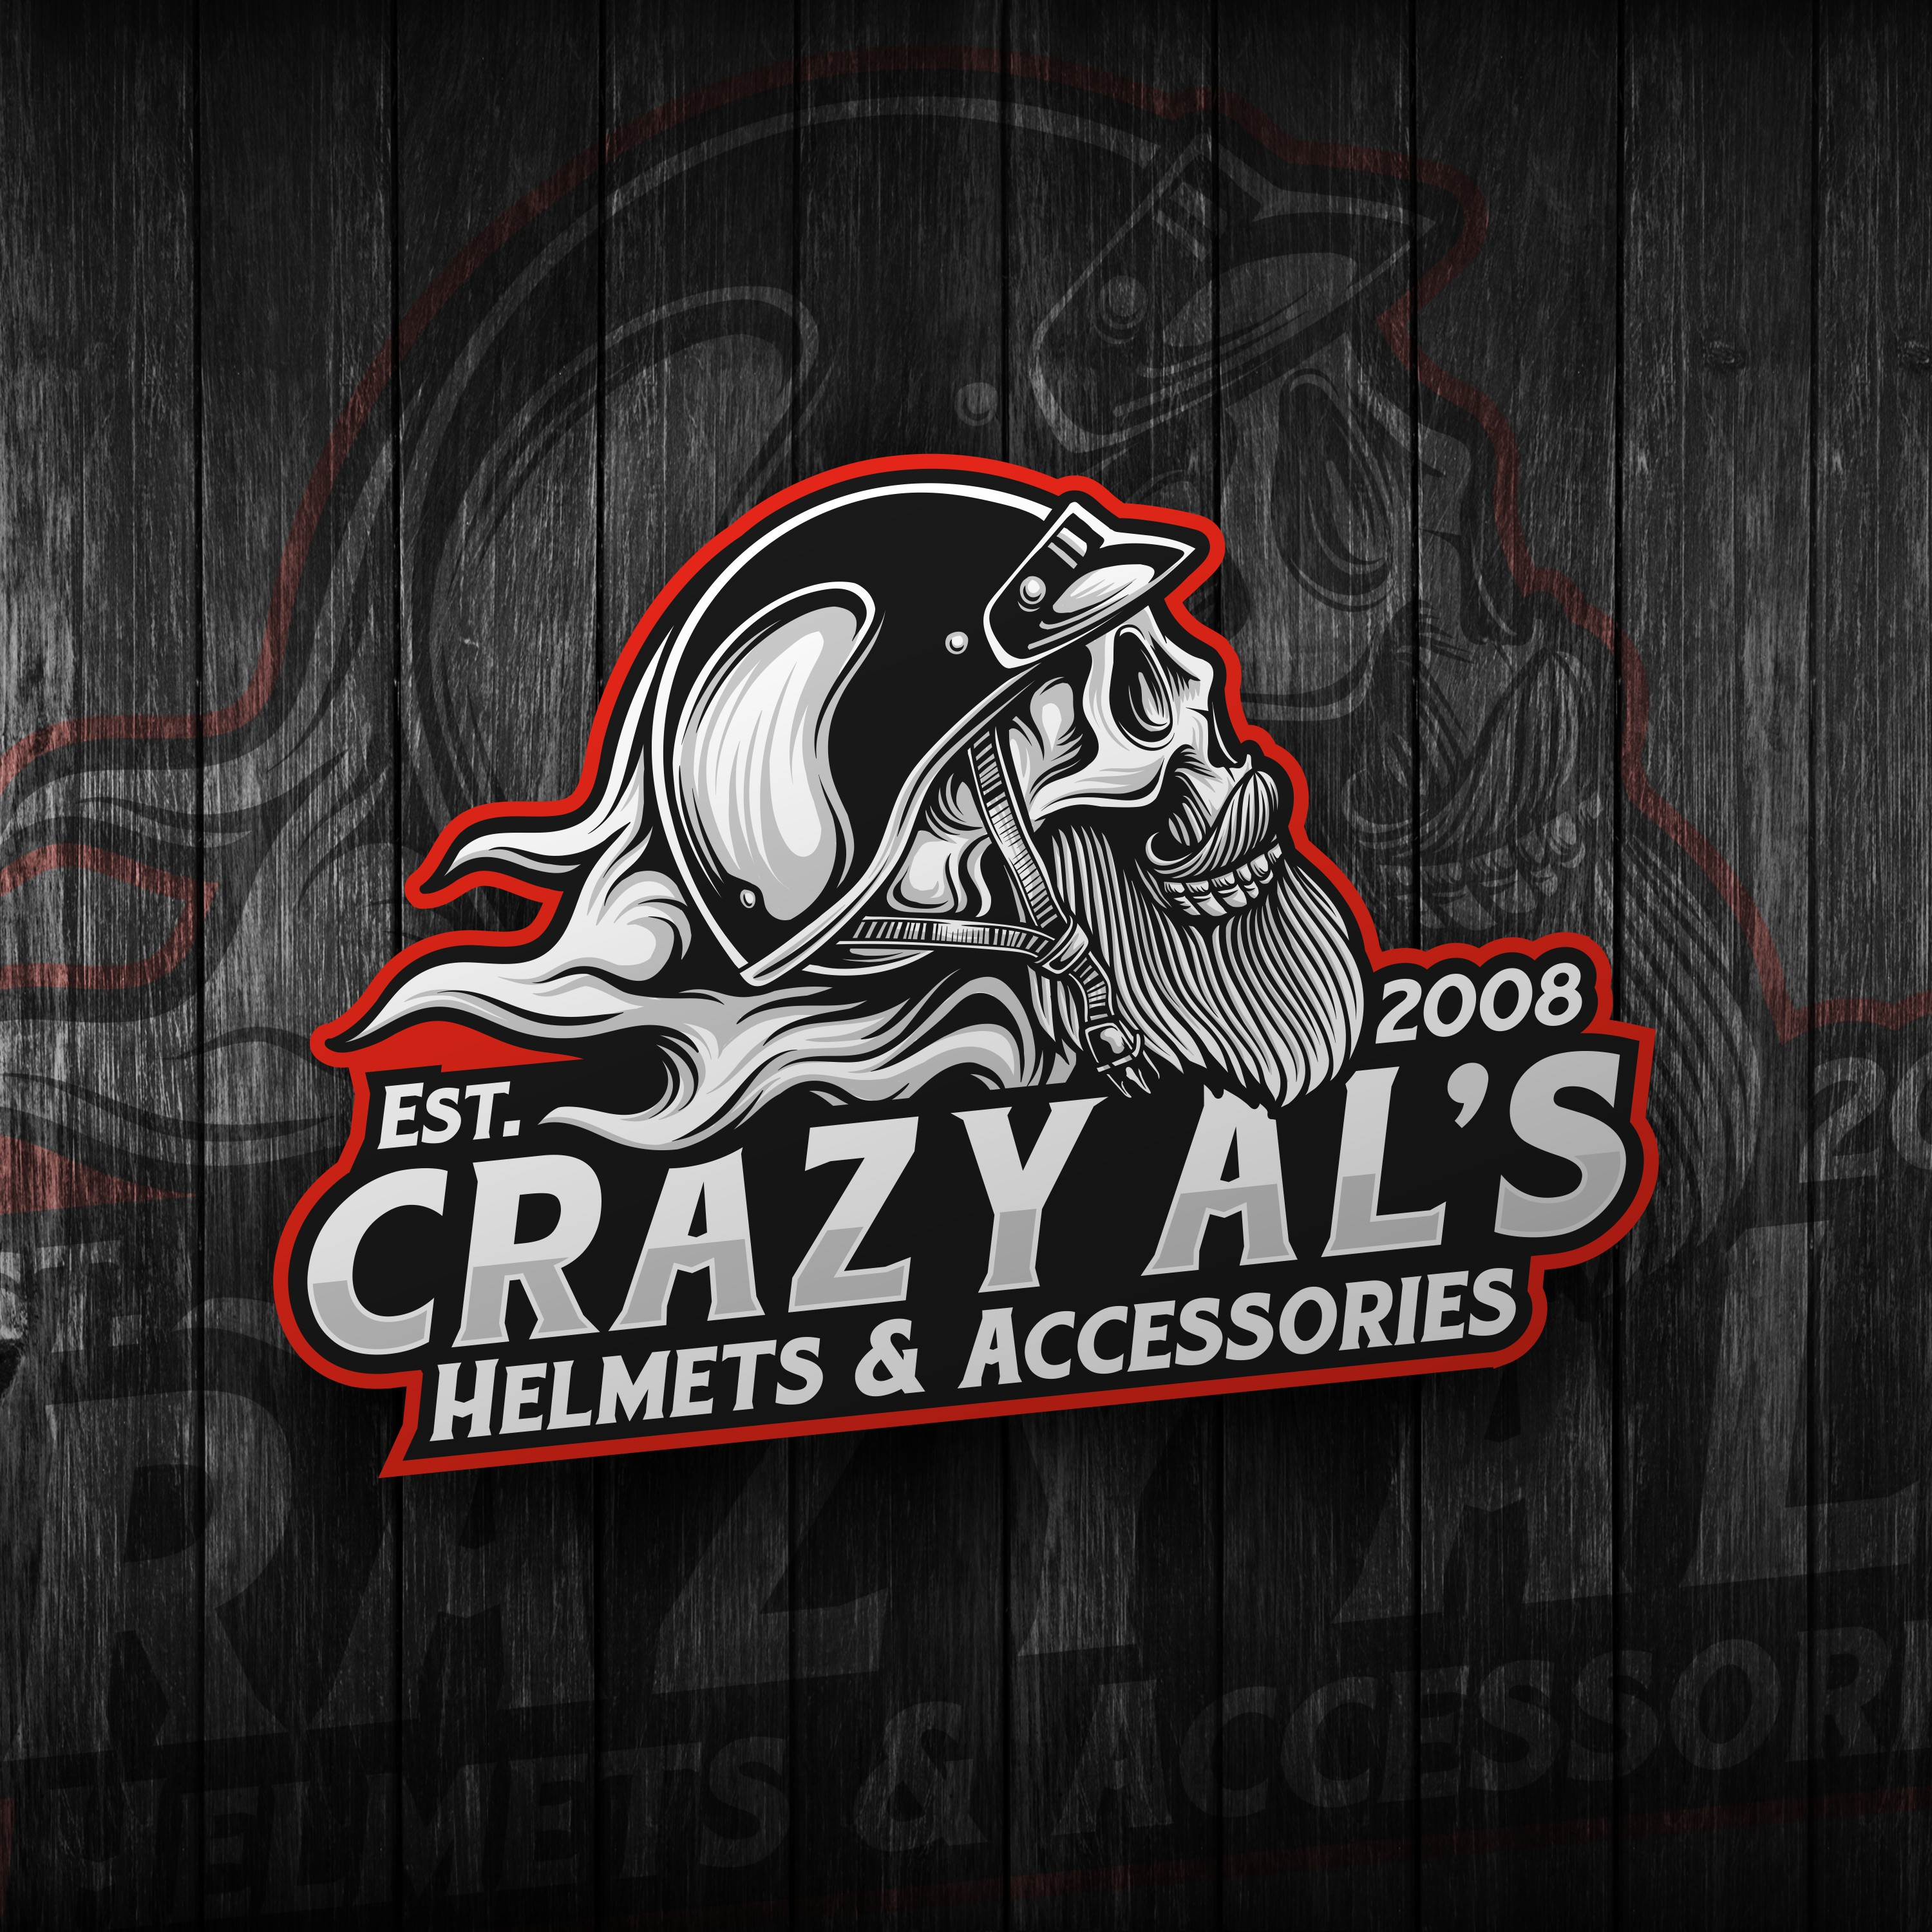 Restore the iconic Crazy Al's motorcycle brand!